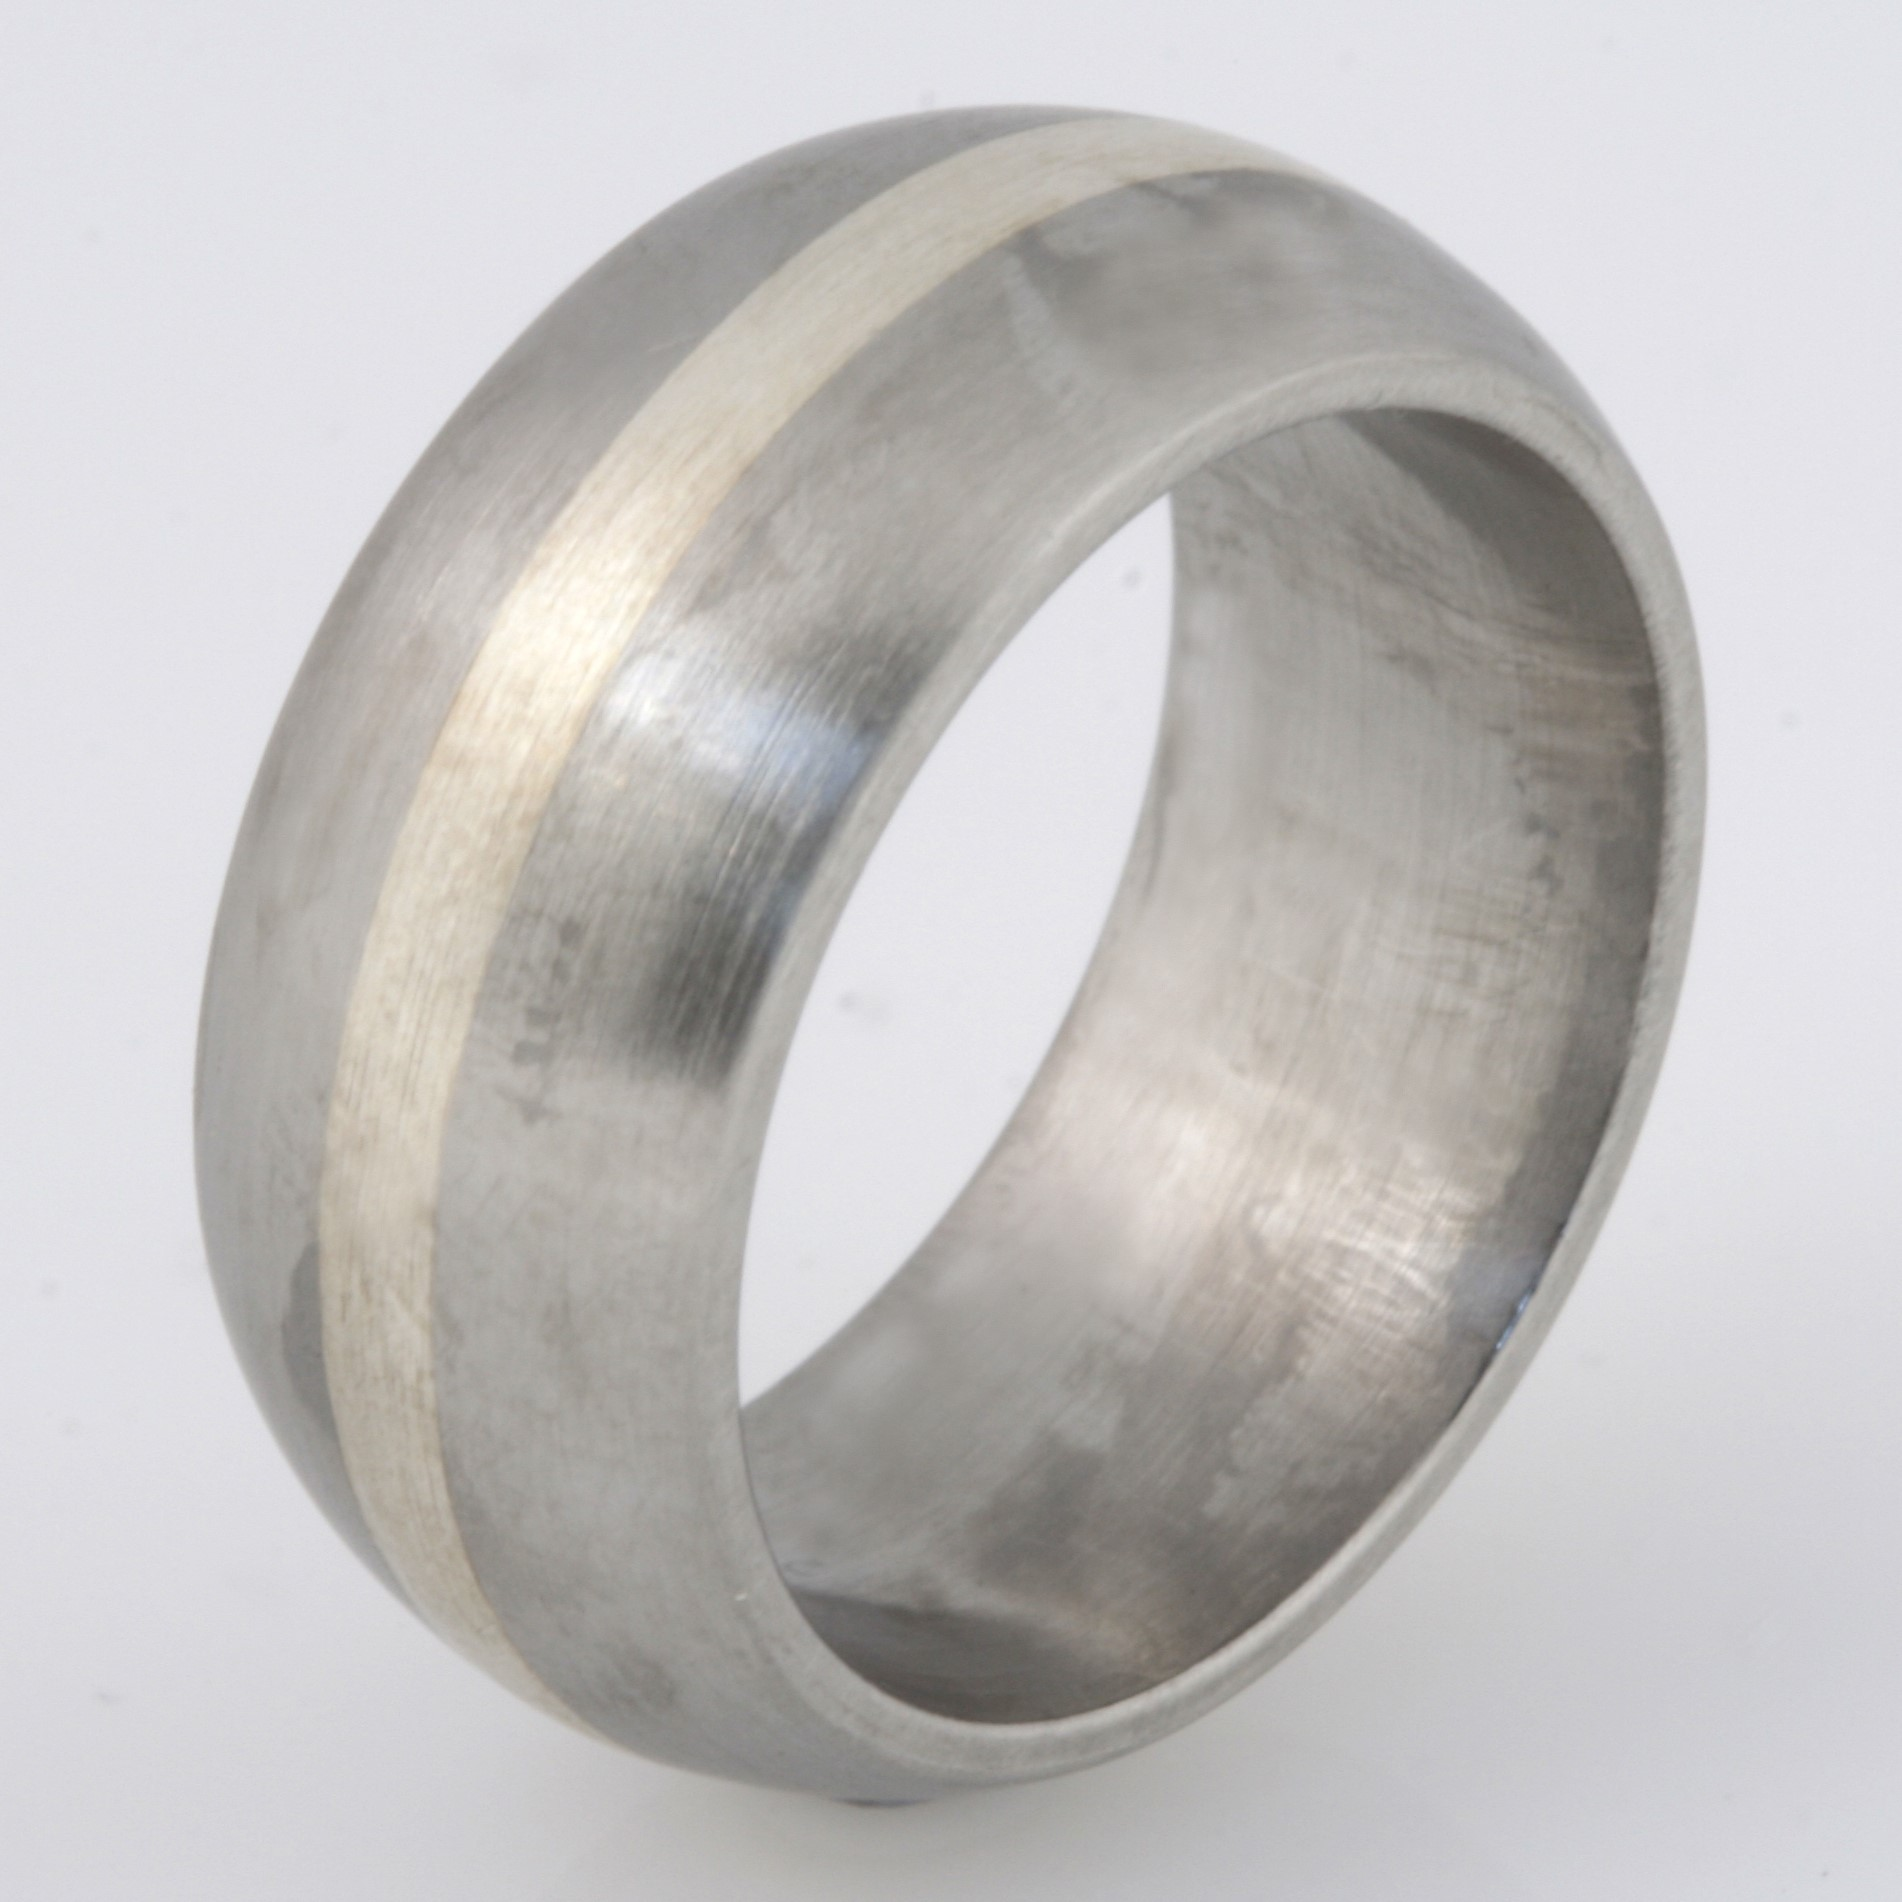 R016 stainless steel & sterling silver mens ring $245